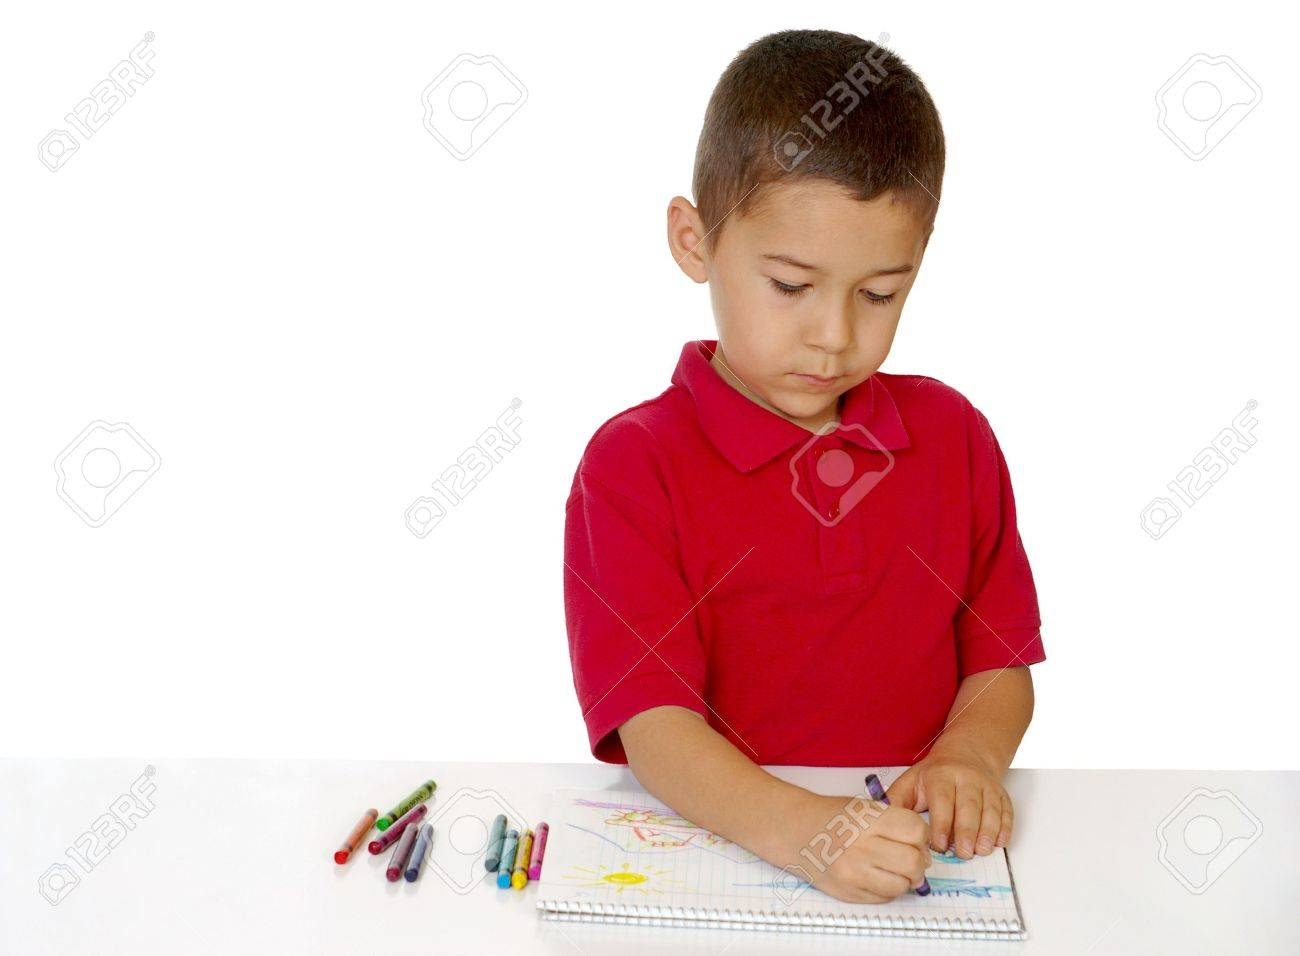 Seven Year Old Boy Coloring With Crayons Stock Photo